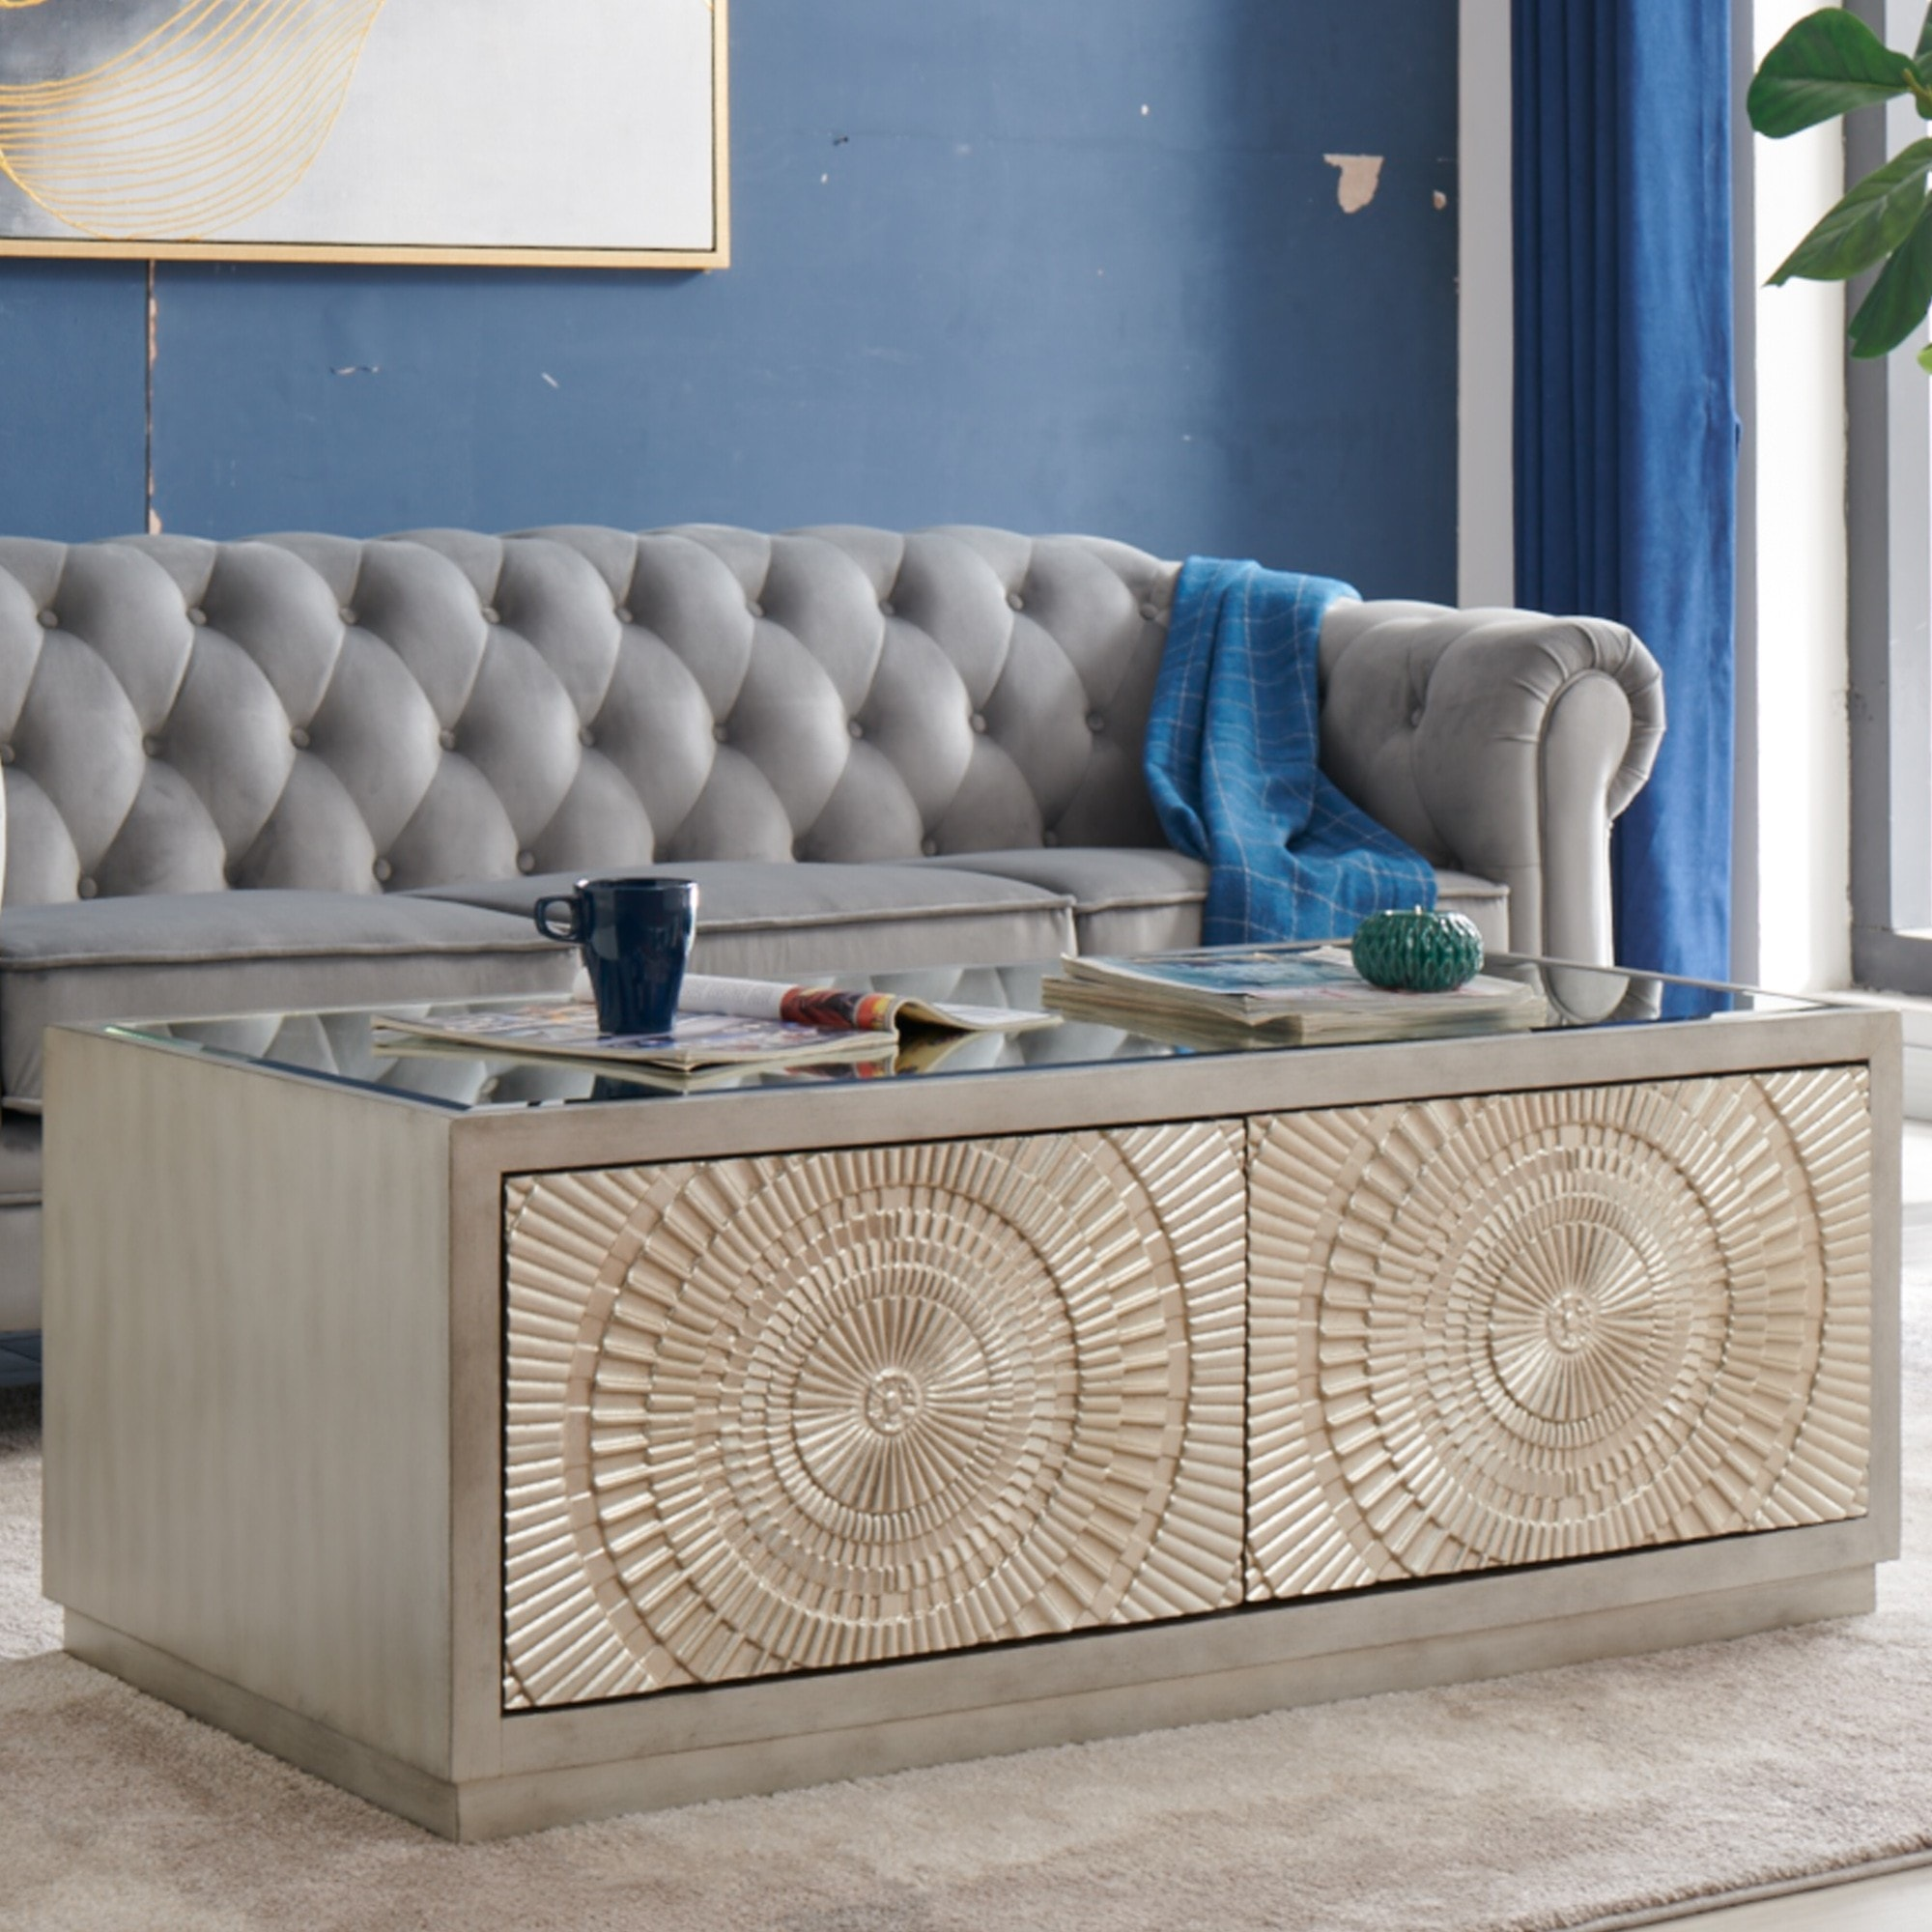 Frenso Coffee Table Silver Silver Coffee Table Modern Coffee Table Storage Coffee Table